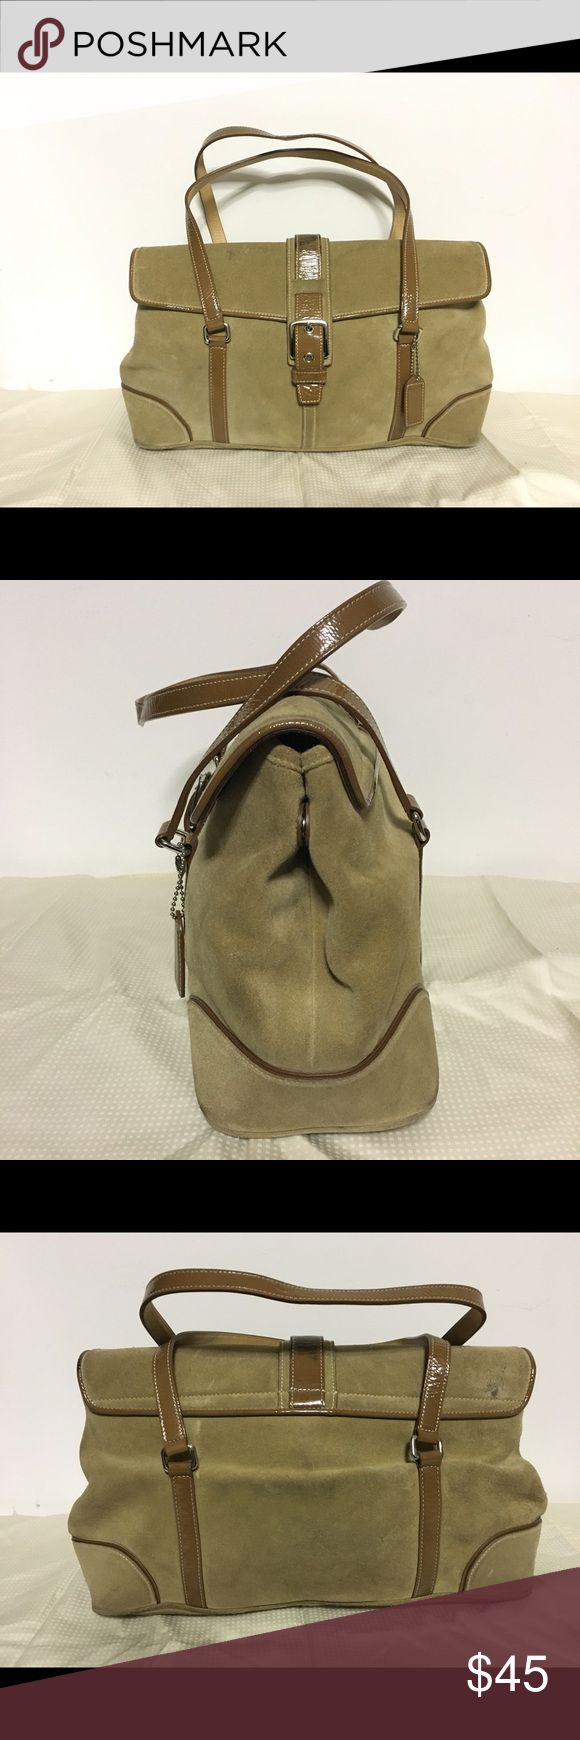 COACH Suede Leather HOBO Double Strap Handbag Coach suede/patent leather double strap hobo handbag in Olive green/tan color with some wear. Noticeable marks on the top patent leather, bottom and back of the bag. A wrinkle on the back of the back as well.  Silver toned hardware.  Protective metal feet. Magnetic snap closure.   Please let me know if you have any questions. Thanks! Coach Bags Hobos